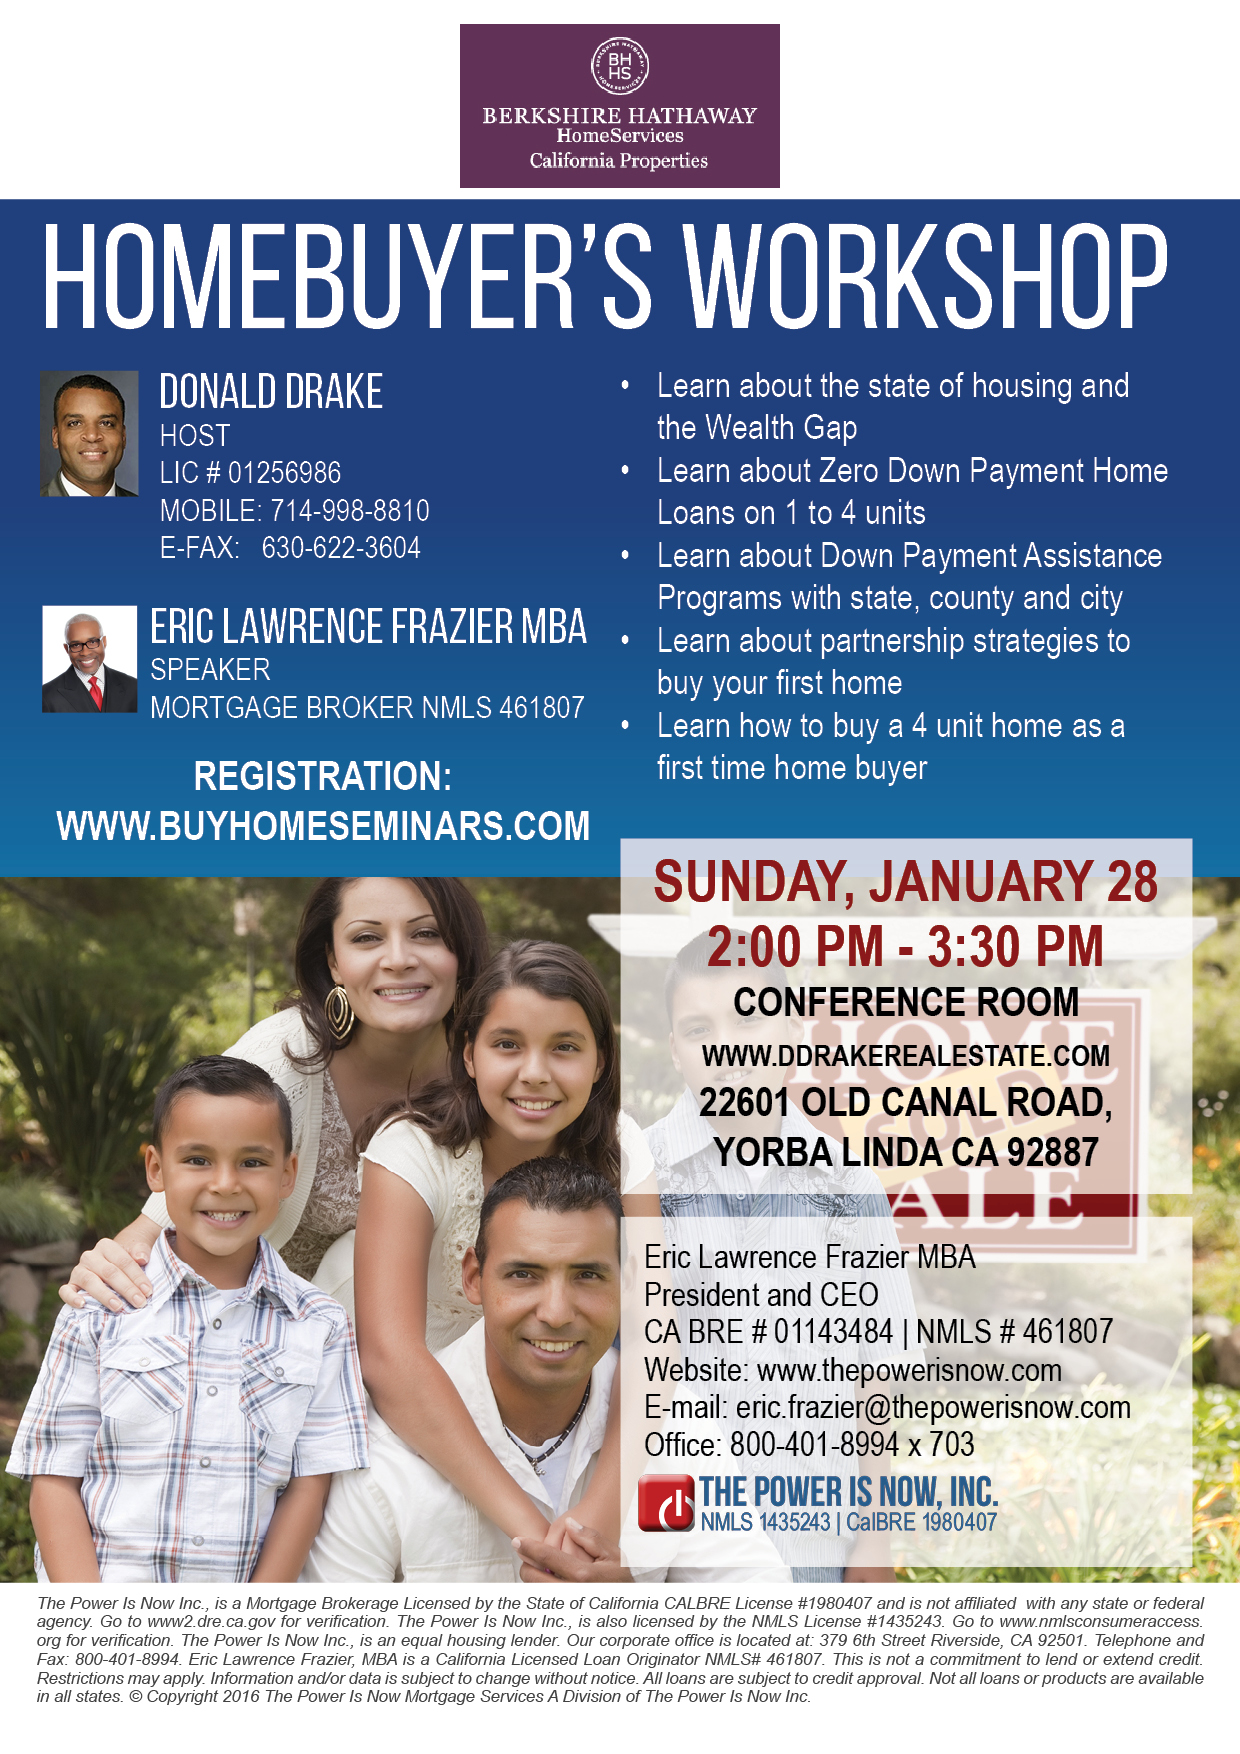 Homebuyer's workshop YL